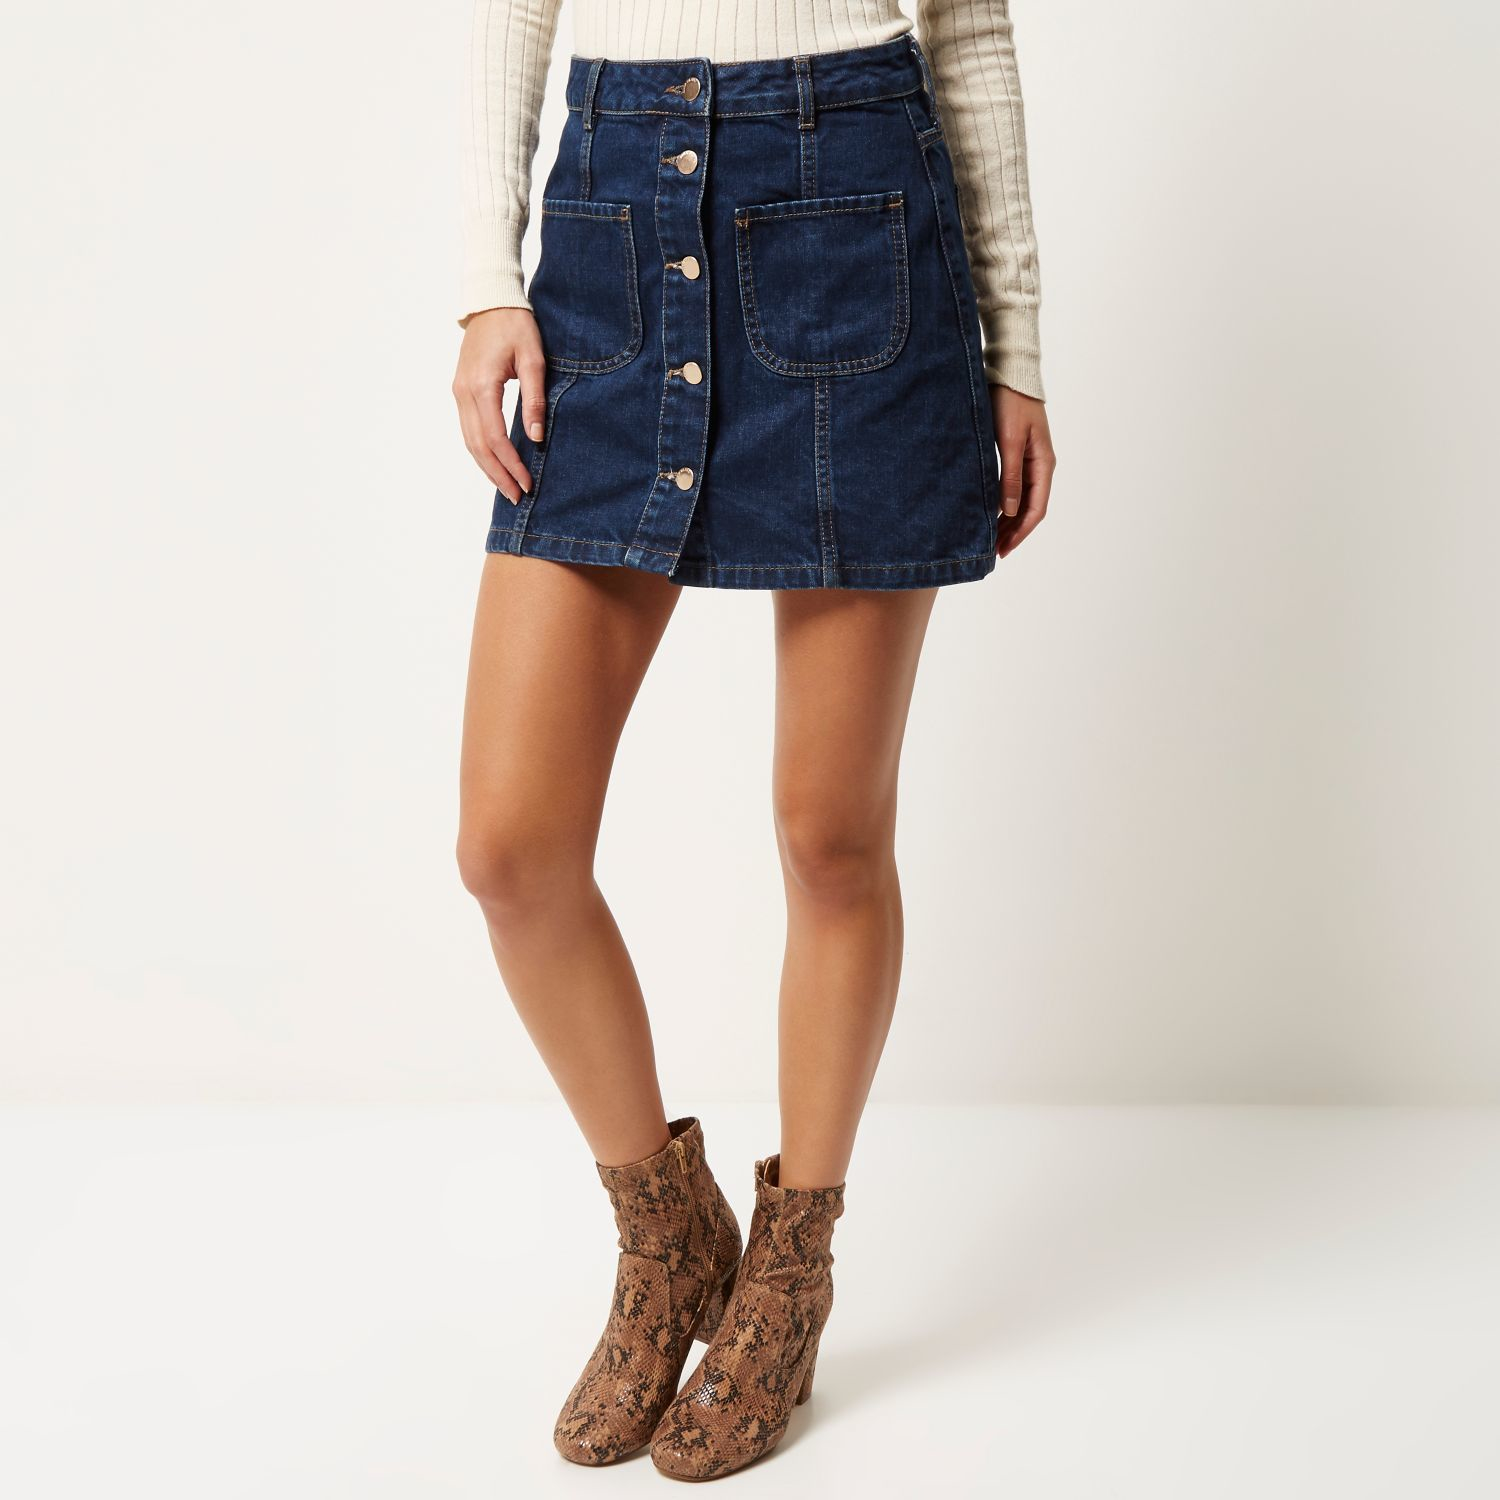 Dark Denim A Line Skirt - Dress Ala